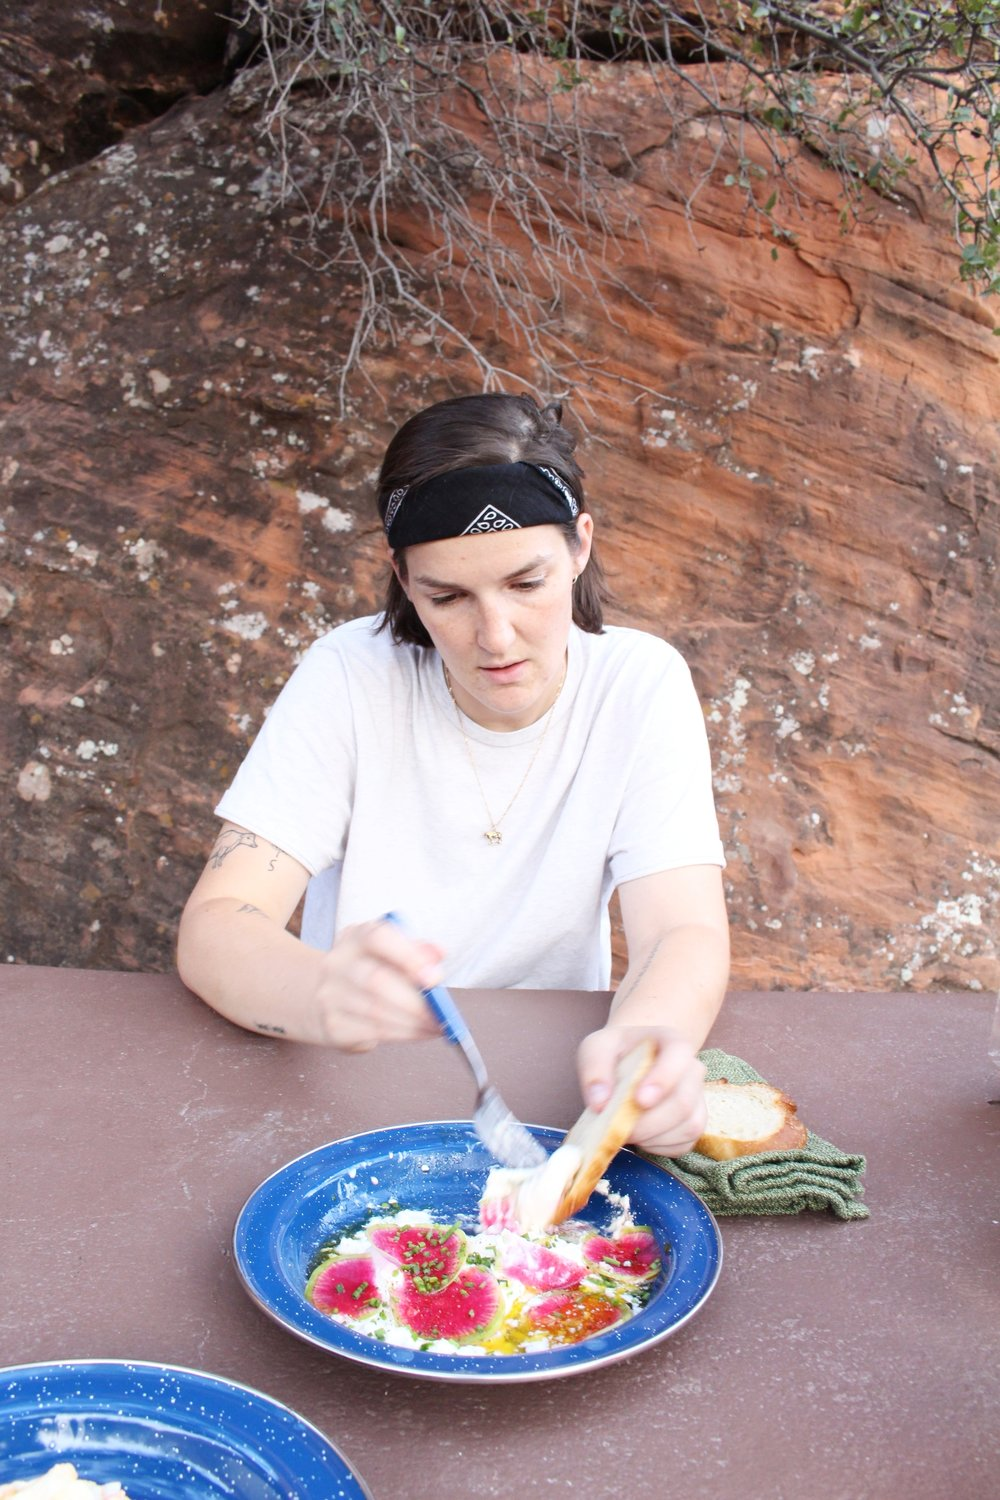 Dinner al fresco among the red rocks